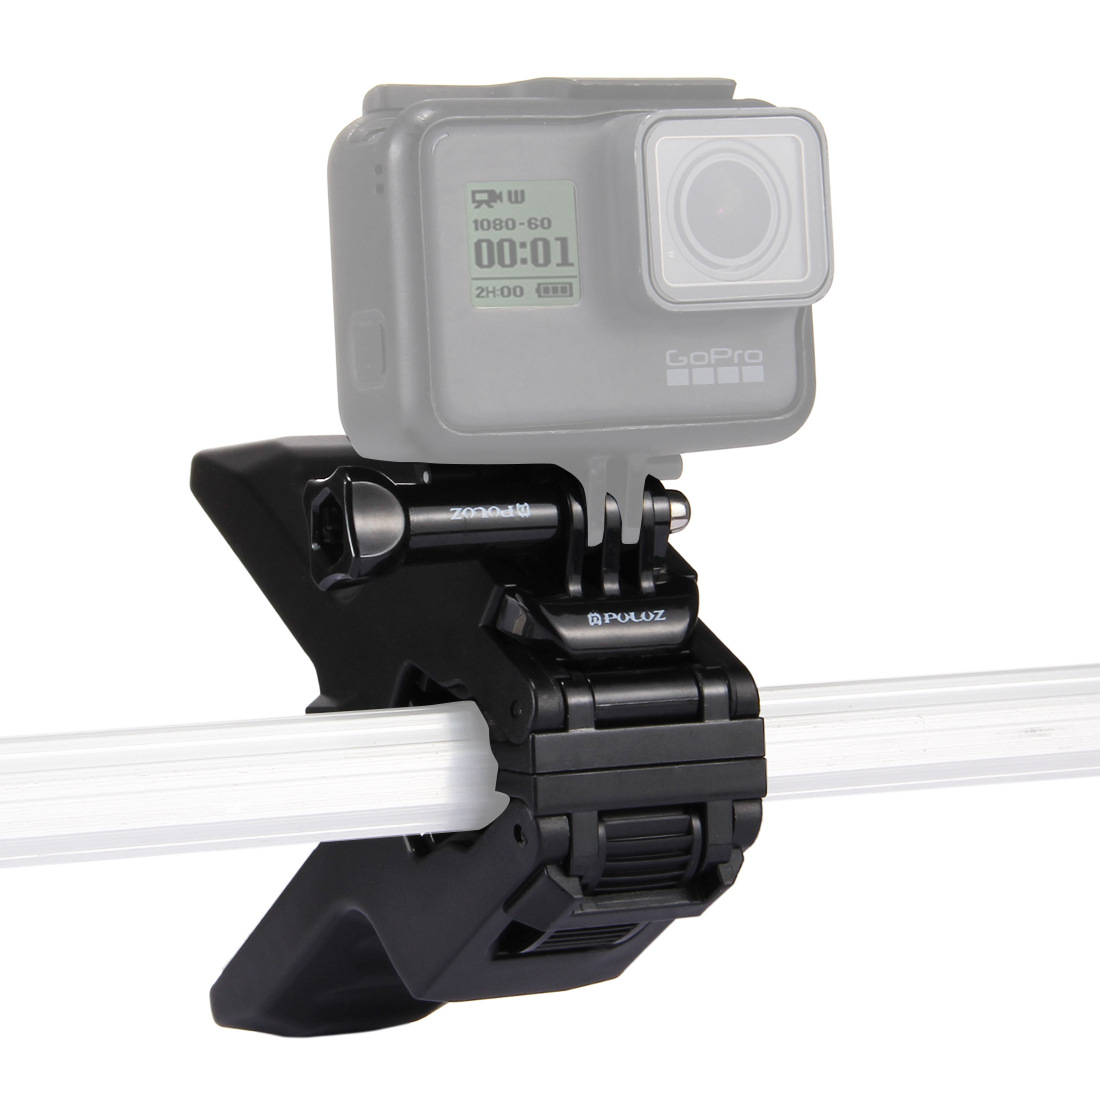 Universal Tripod Mount For Gopro Hero DJI Osmo Action Camera Accessories Set black